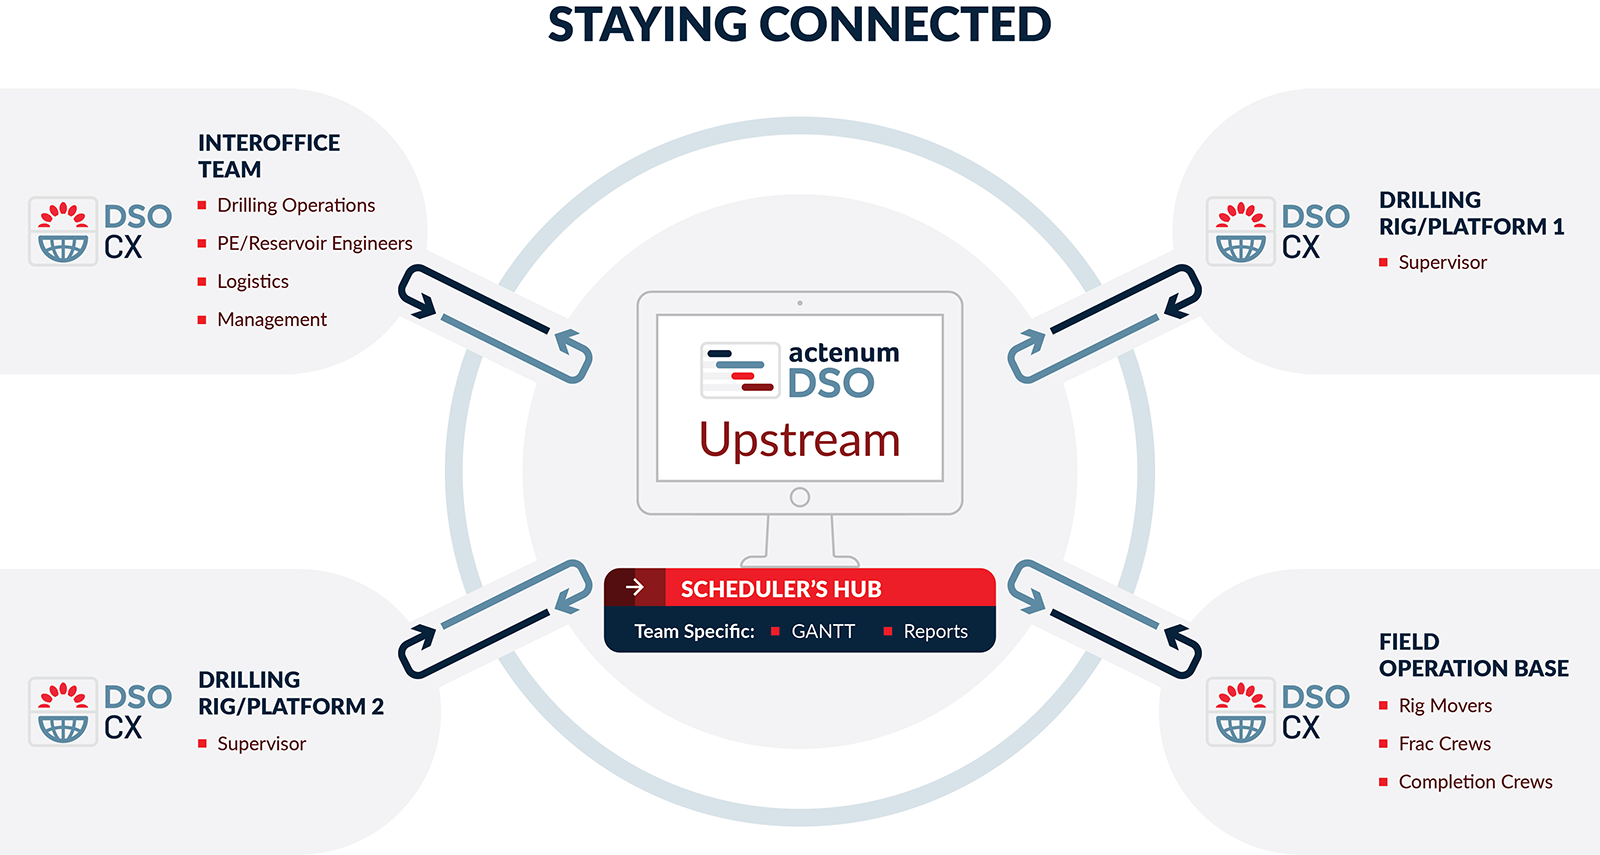 Actenum DSO/CX: Keep Operations Connected